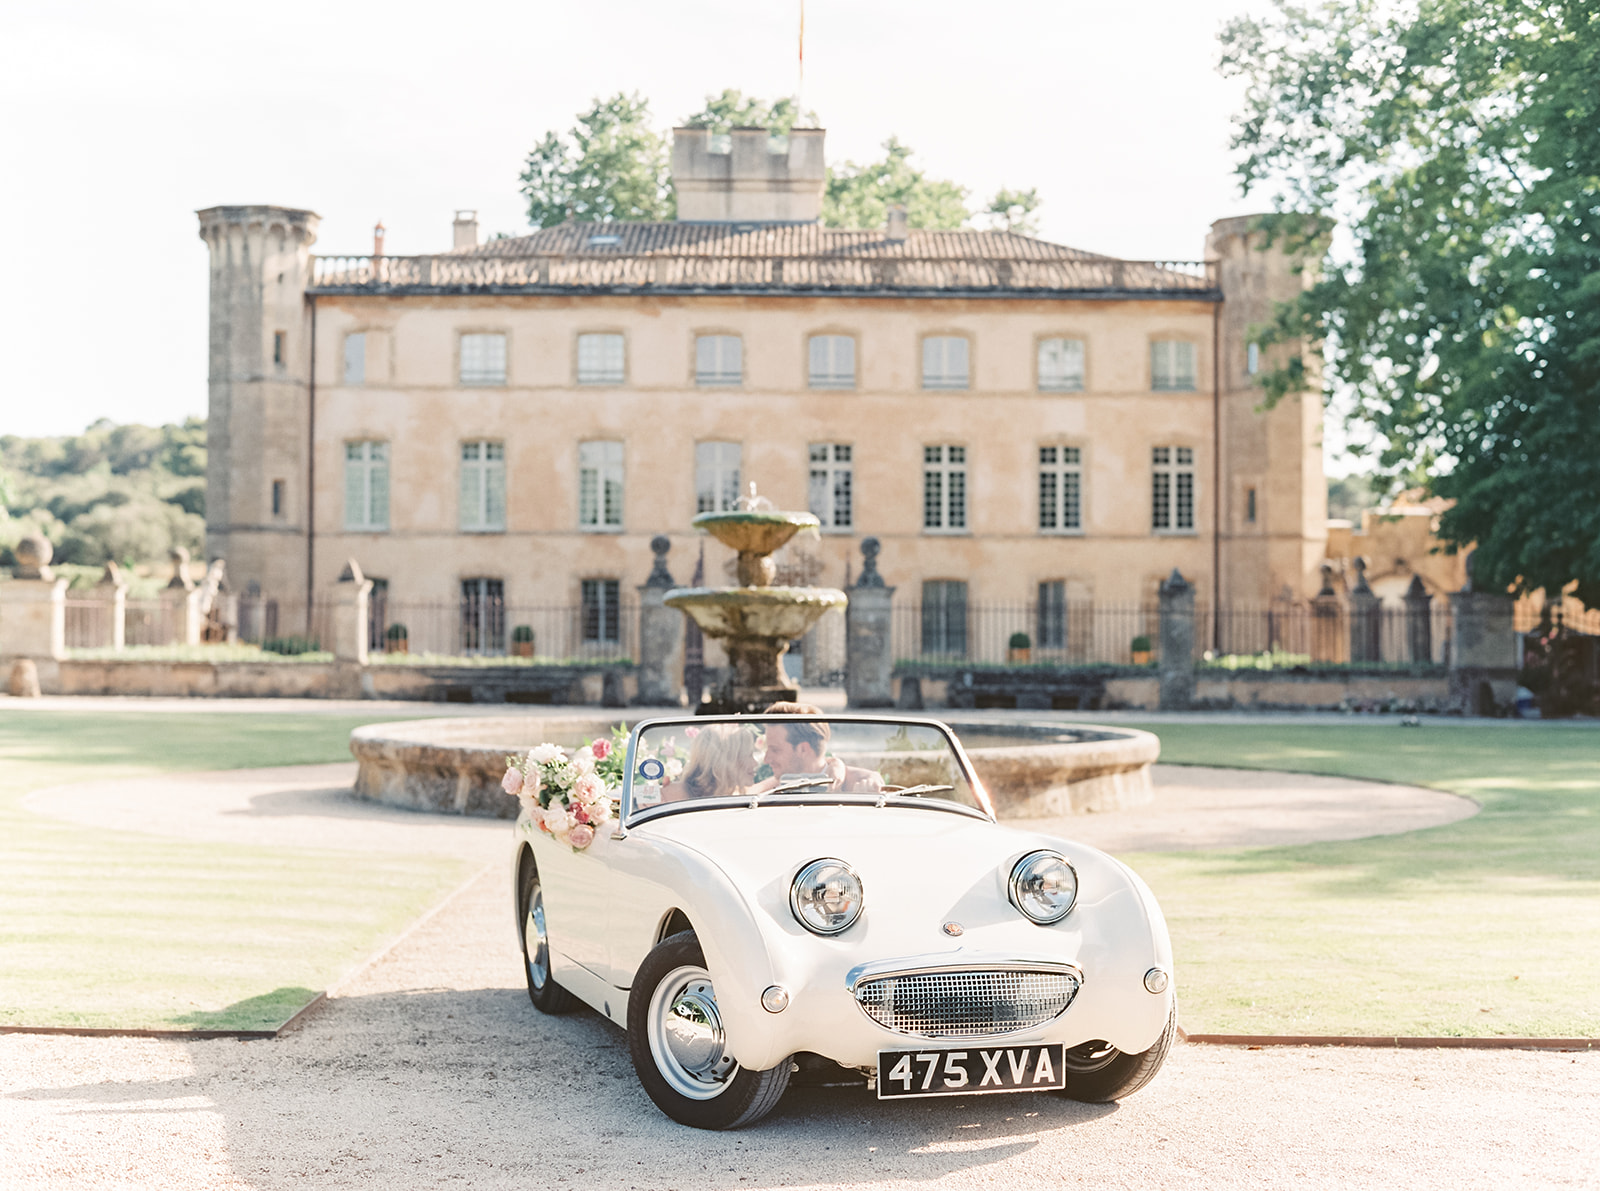 A photo of one of the cars available for weddings and events at Provence Classics, who offer Classic Car Rental in the south of France.